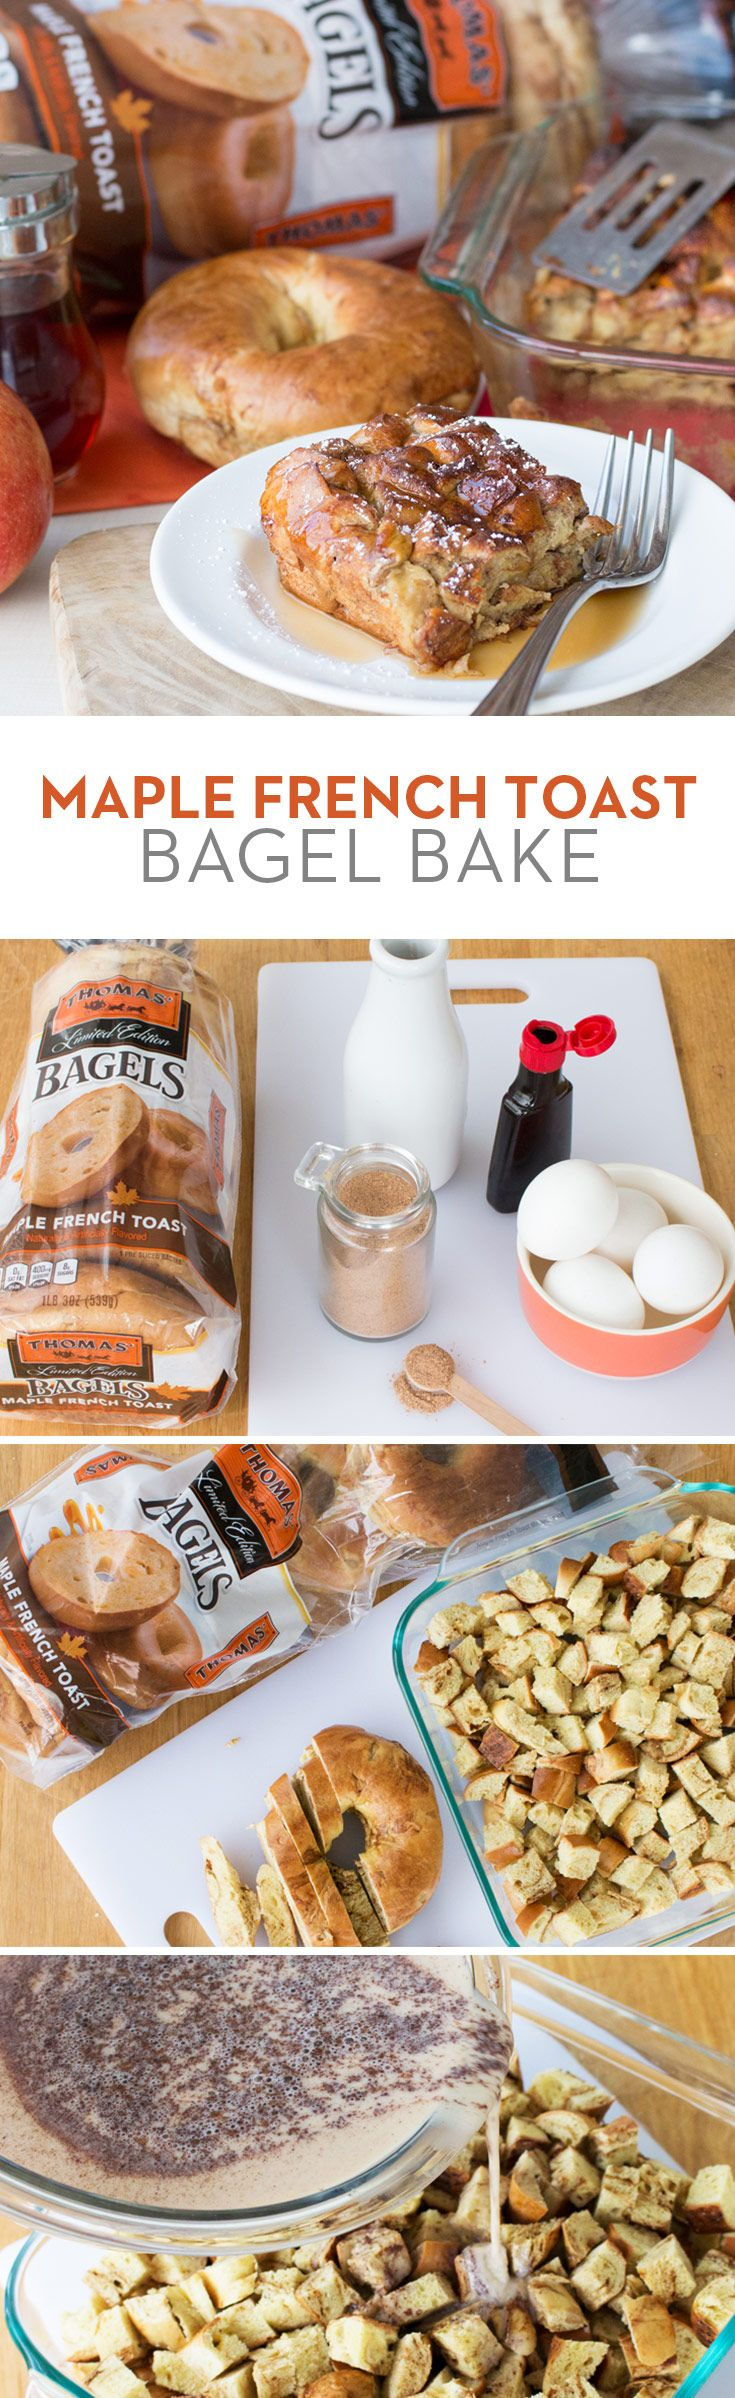 Maple French Toast Bagel Bake: Turn Thomas' Limited Edition Maple French Toast Bagels into...French toast! This easy breakfast dish is perfect for weekend brunch with family or friends. And you may not even need maple syrup on the side!